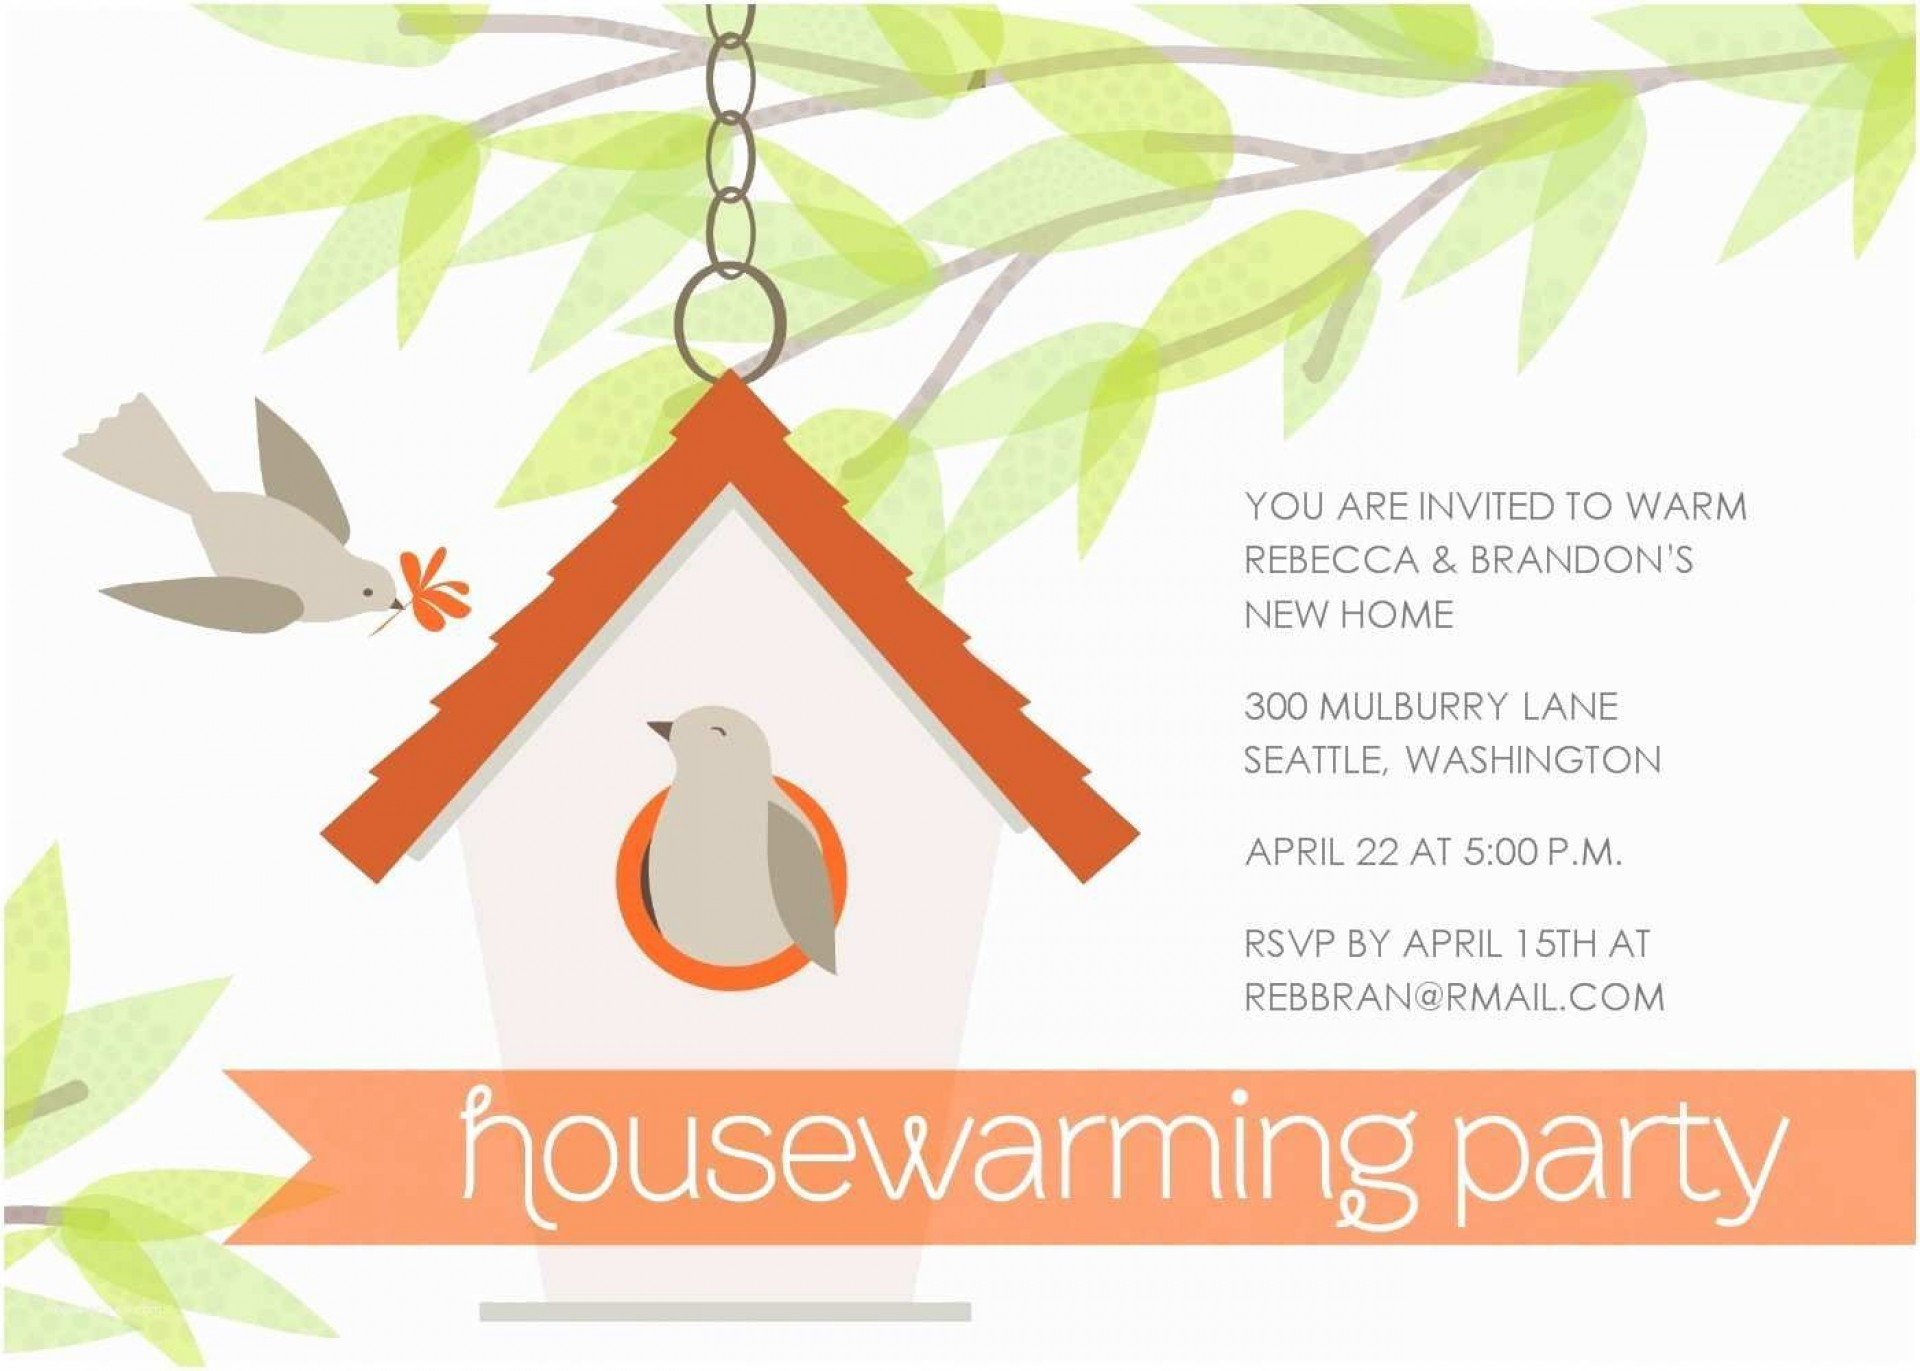 009 Dreaded Housewarming Party Invite Template High Def  Templates Invitation Maker Editable1920